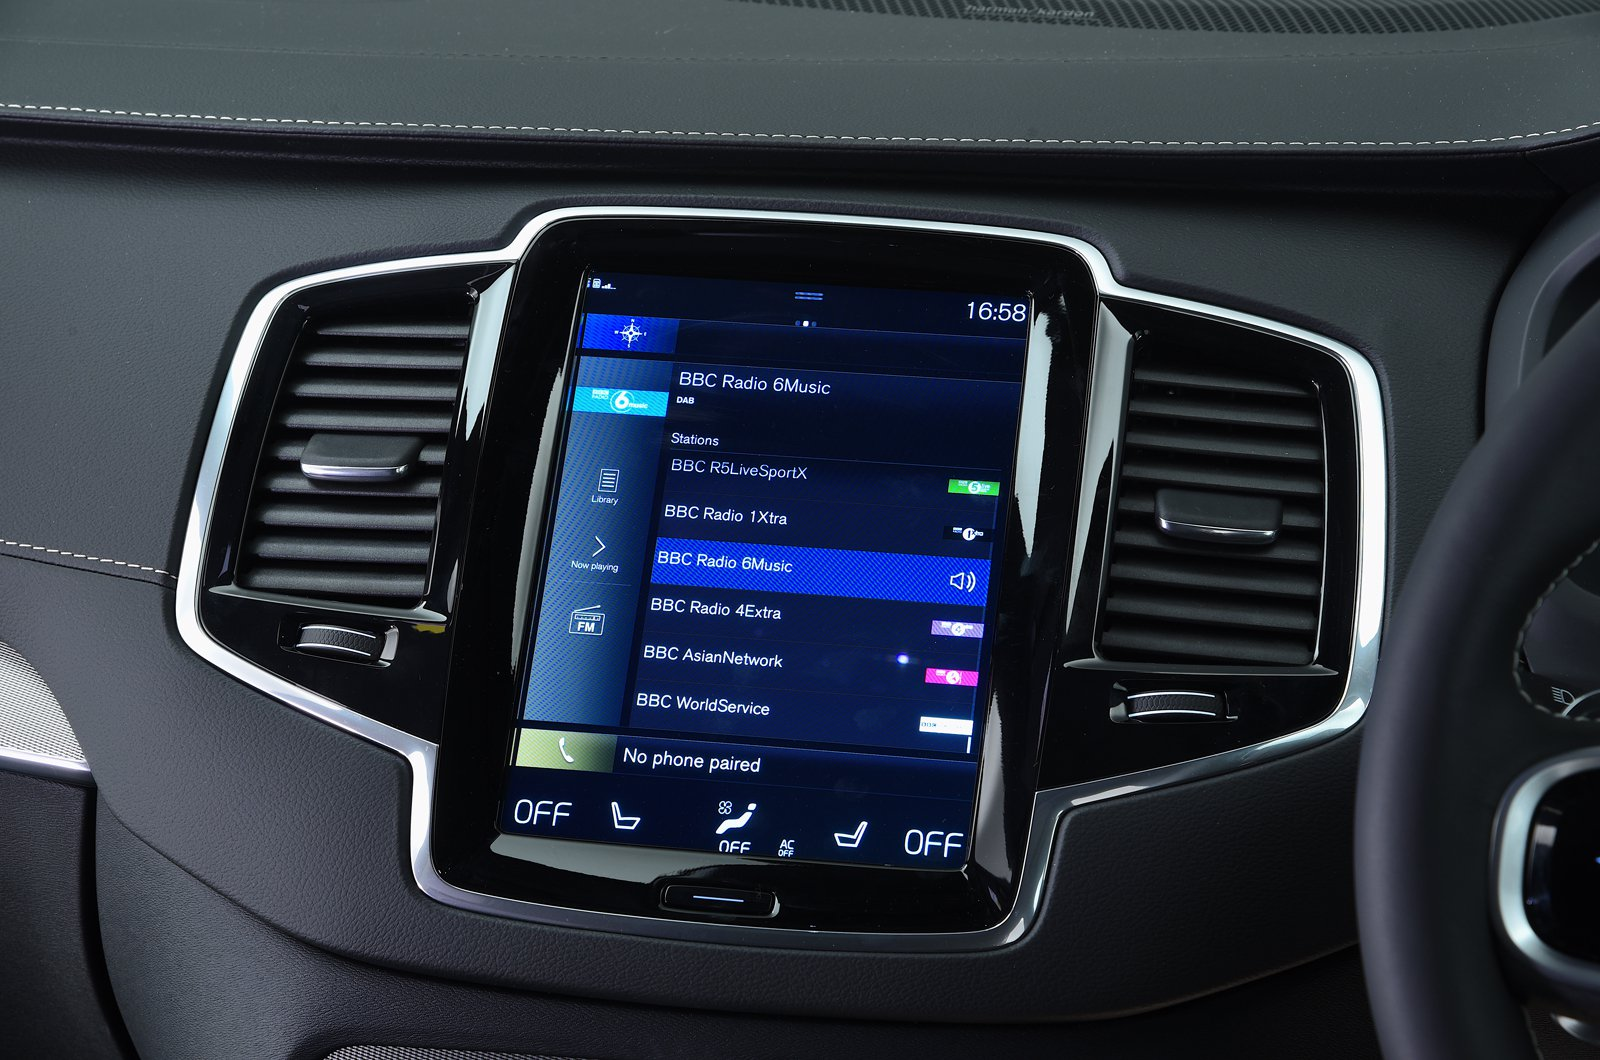 Volvo XC90 T8 infotainment system - 69-plate car